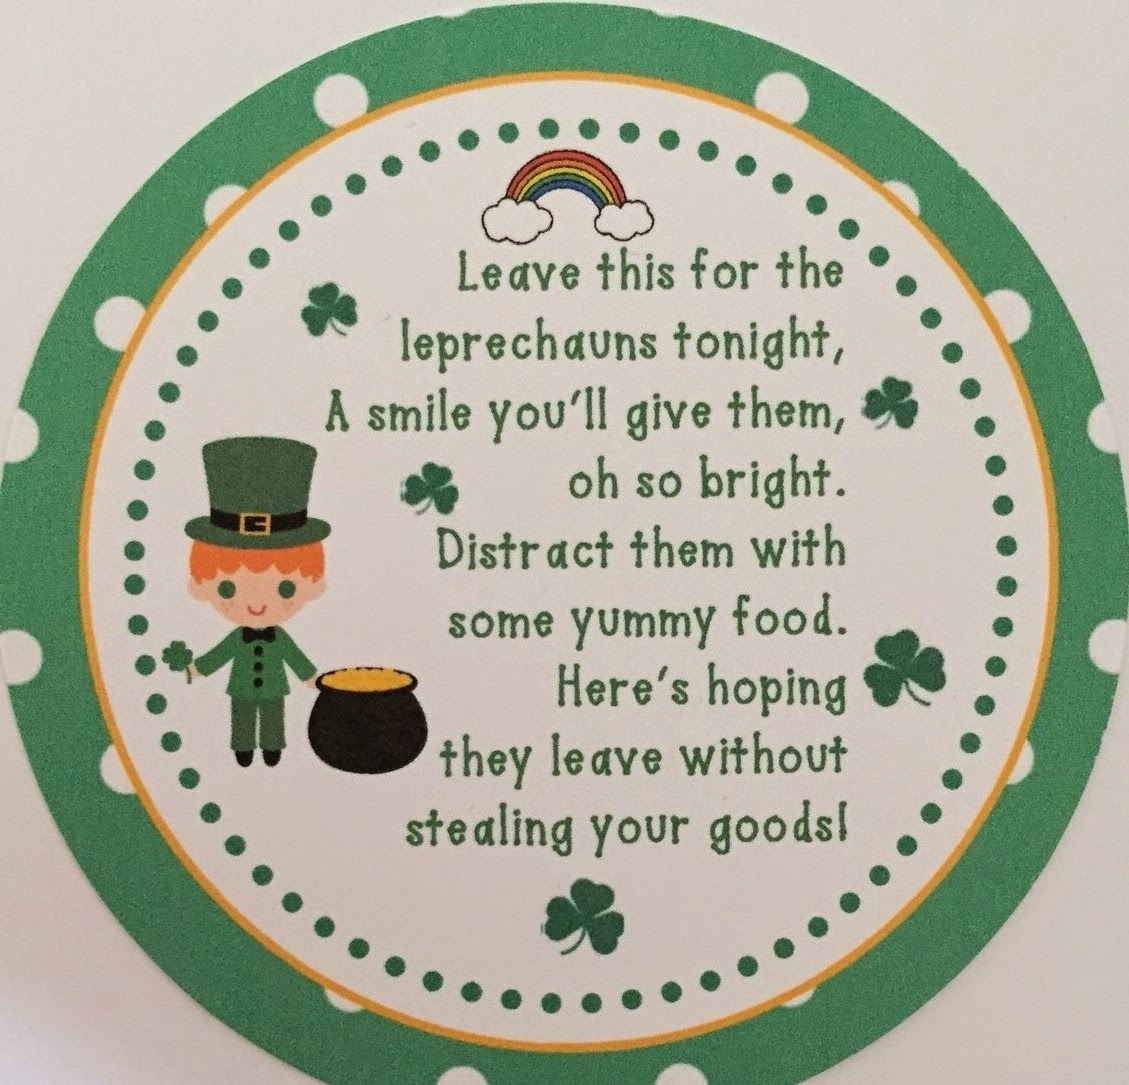 https://www.etsy.com/listing/224840395/set-of-12-printed-st-patricks-day-goodie